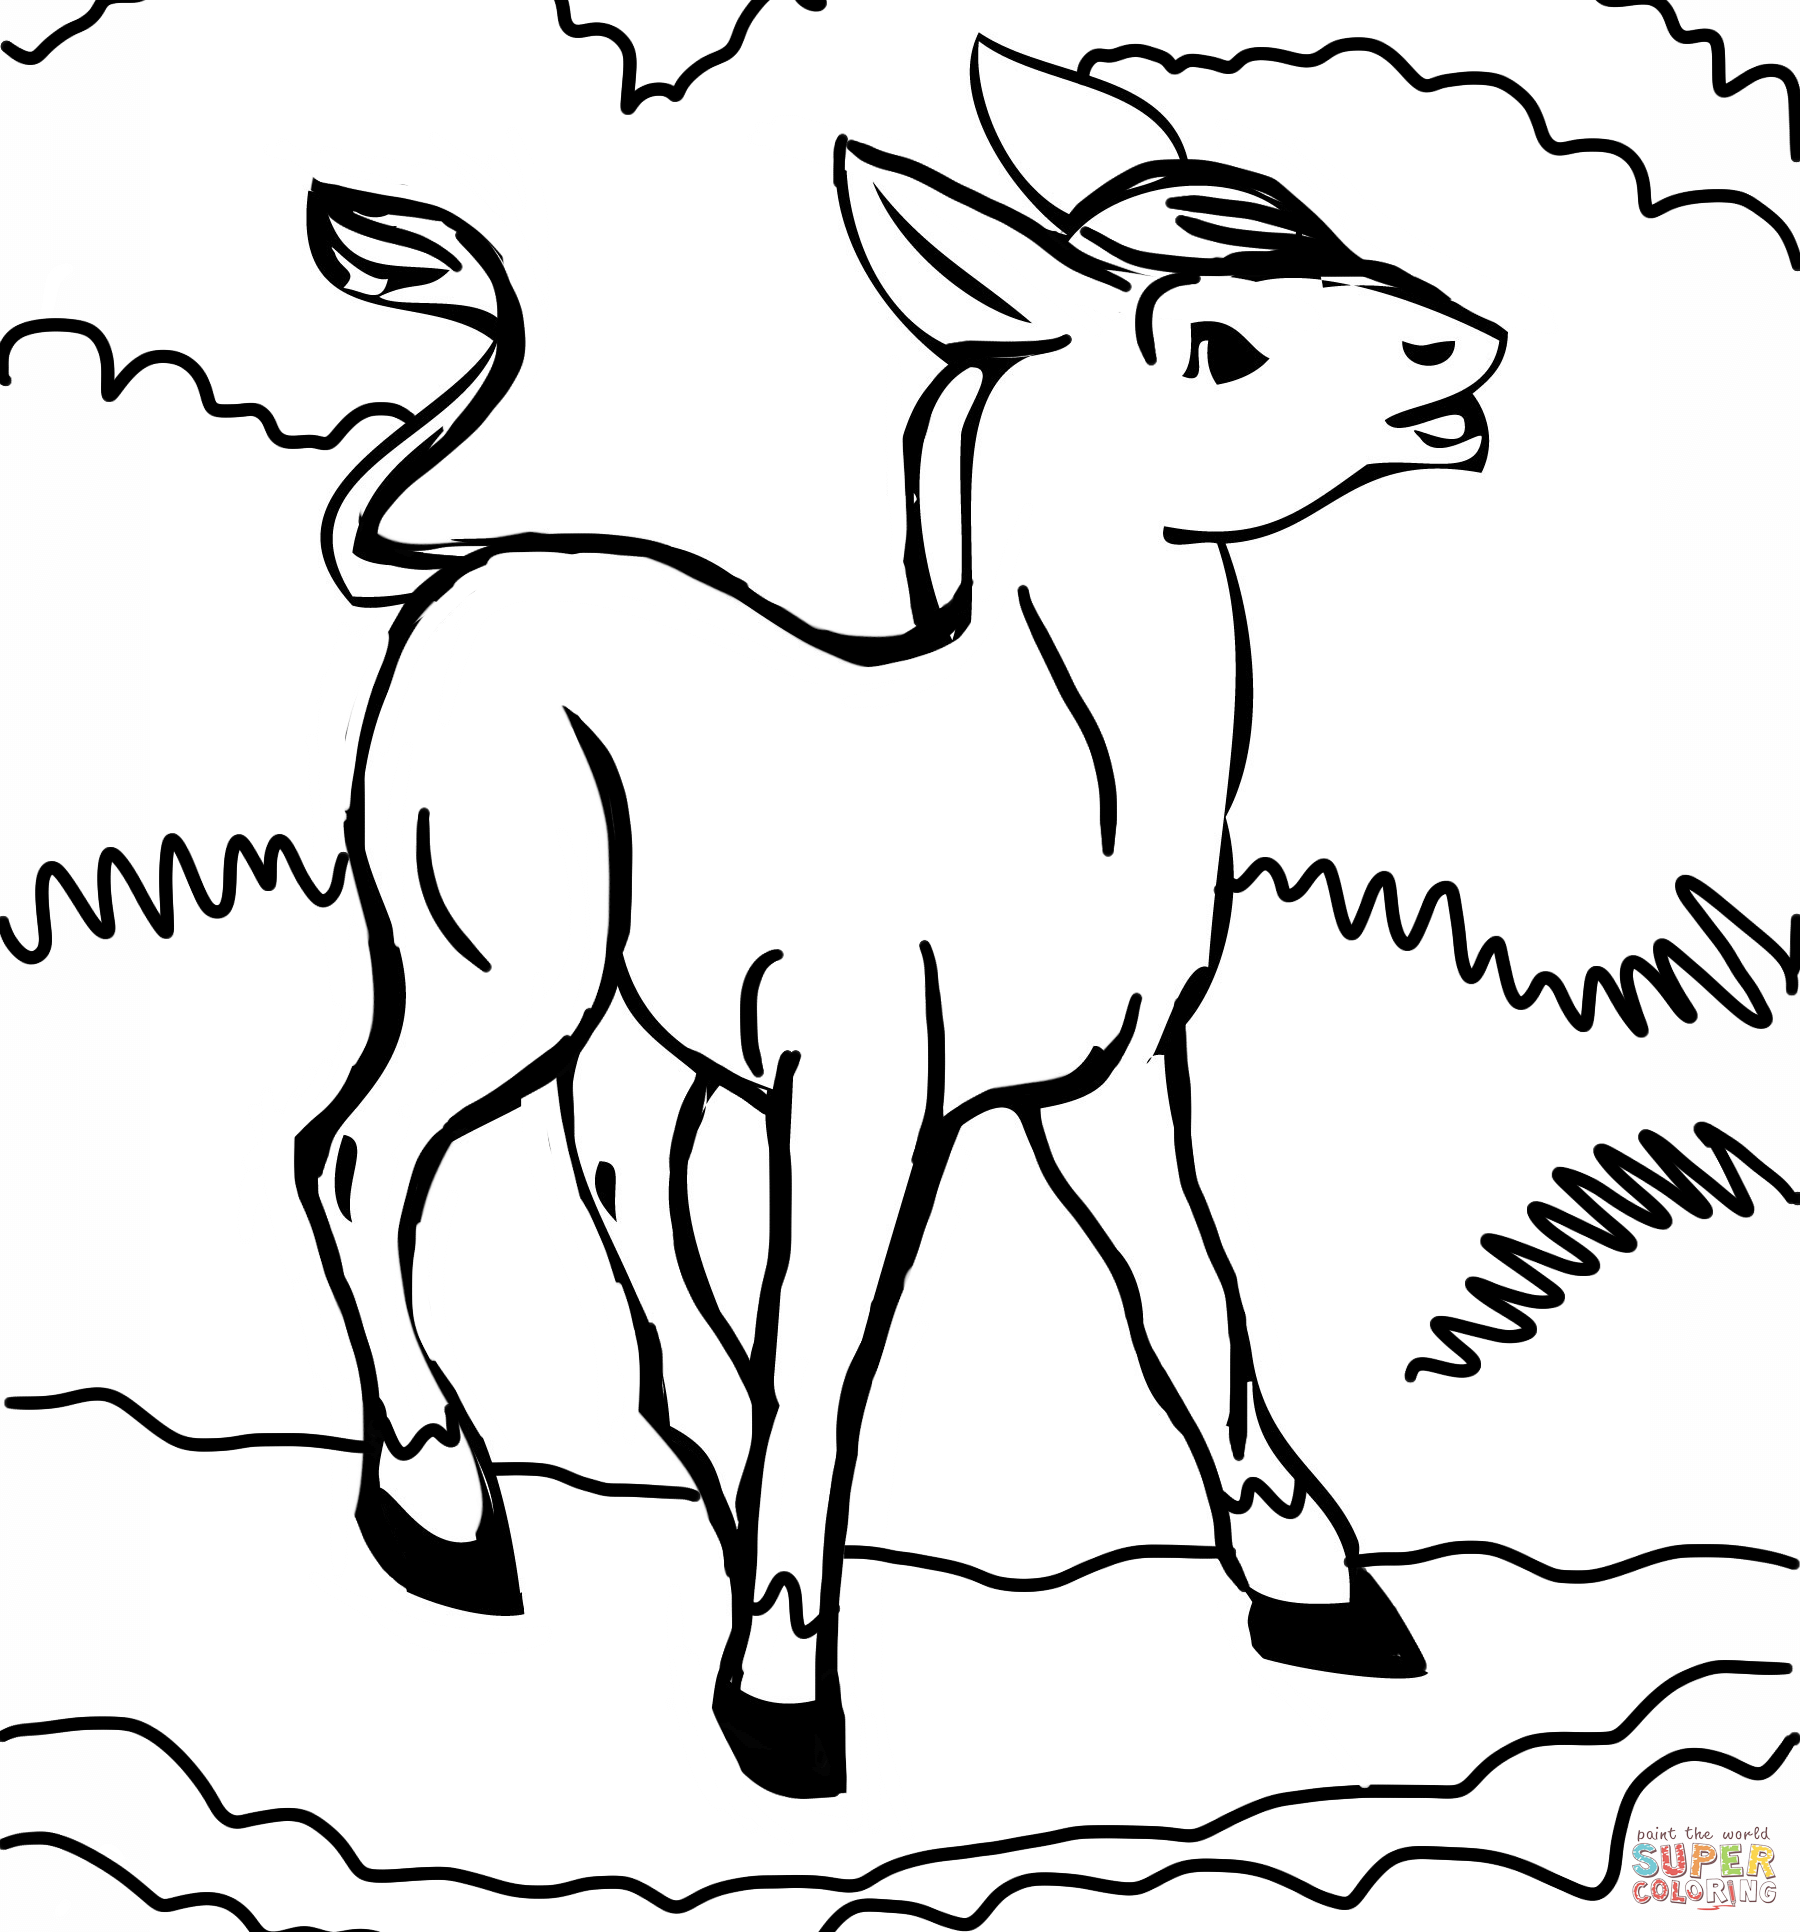 donkey colouring pages donkey coloring page coloring home colouring donkey pages